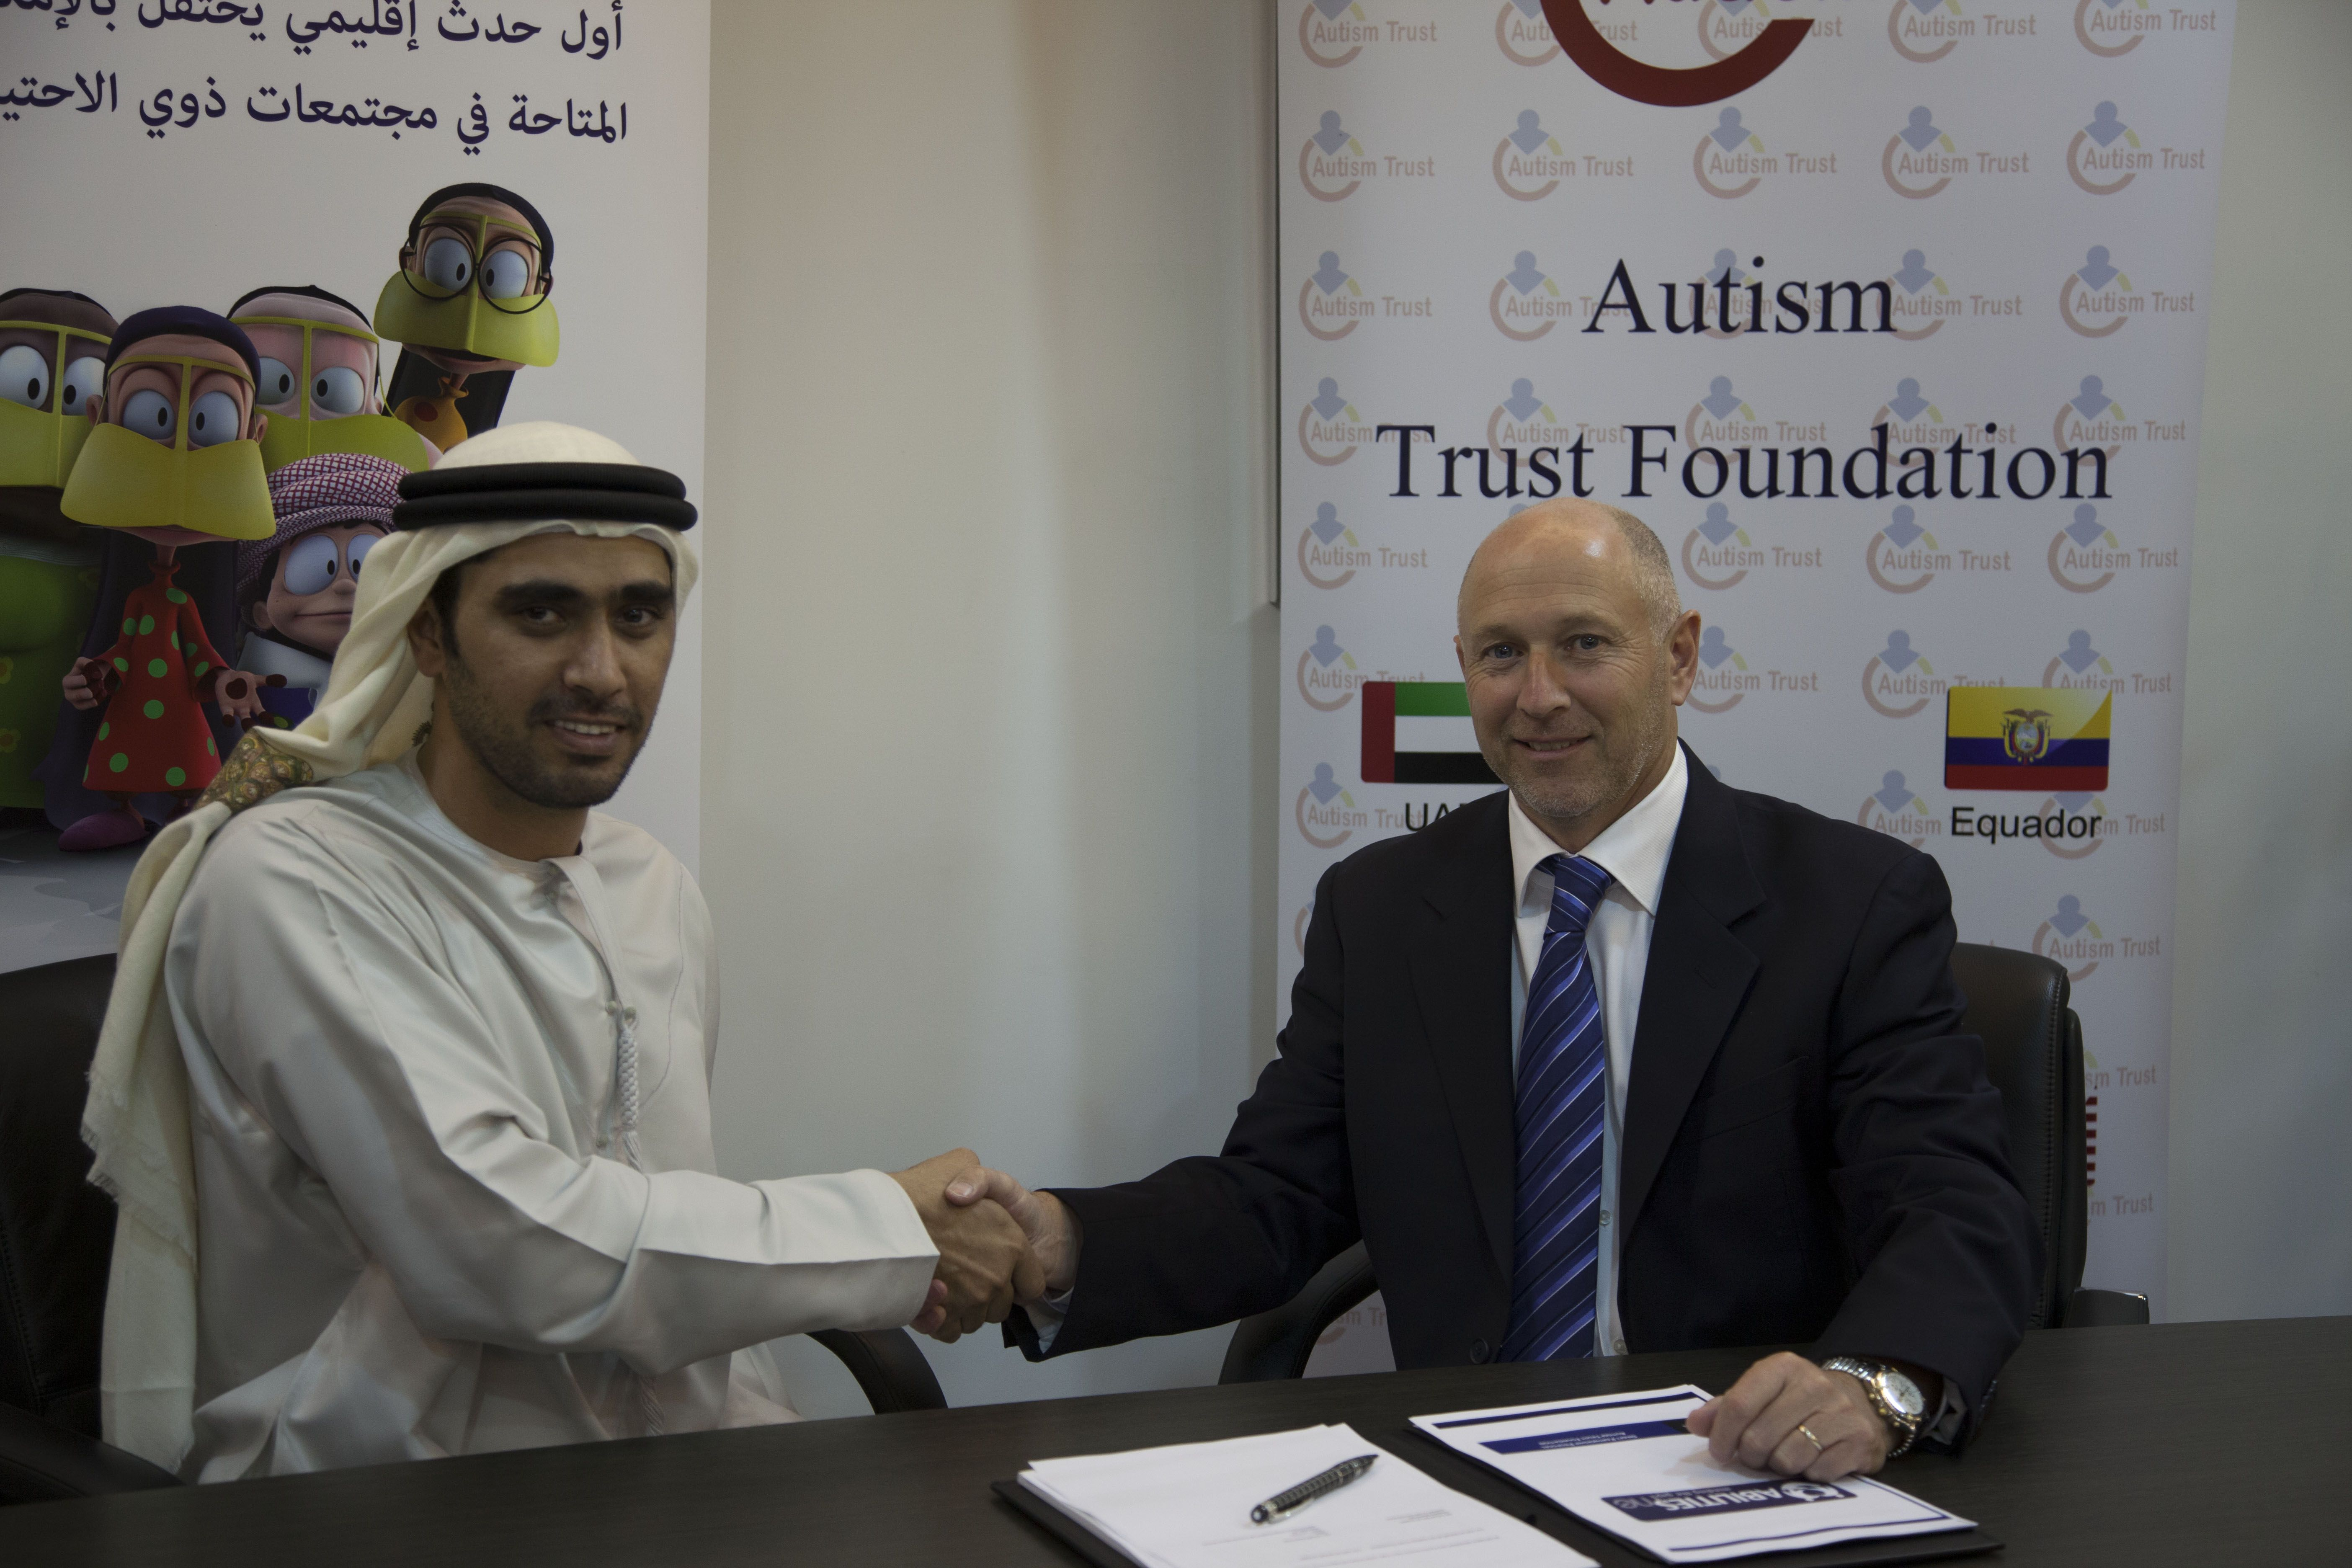 ABILTIESme And Autism Trust Foundation signed MOU